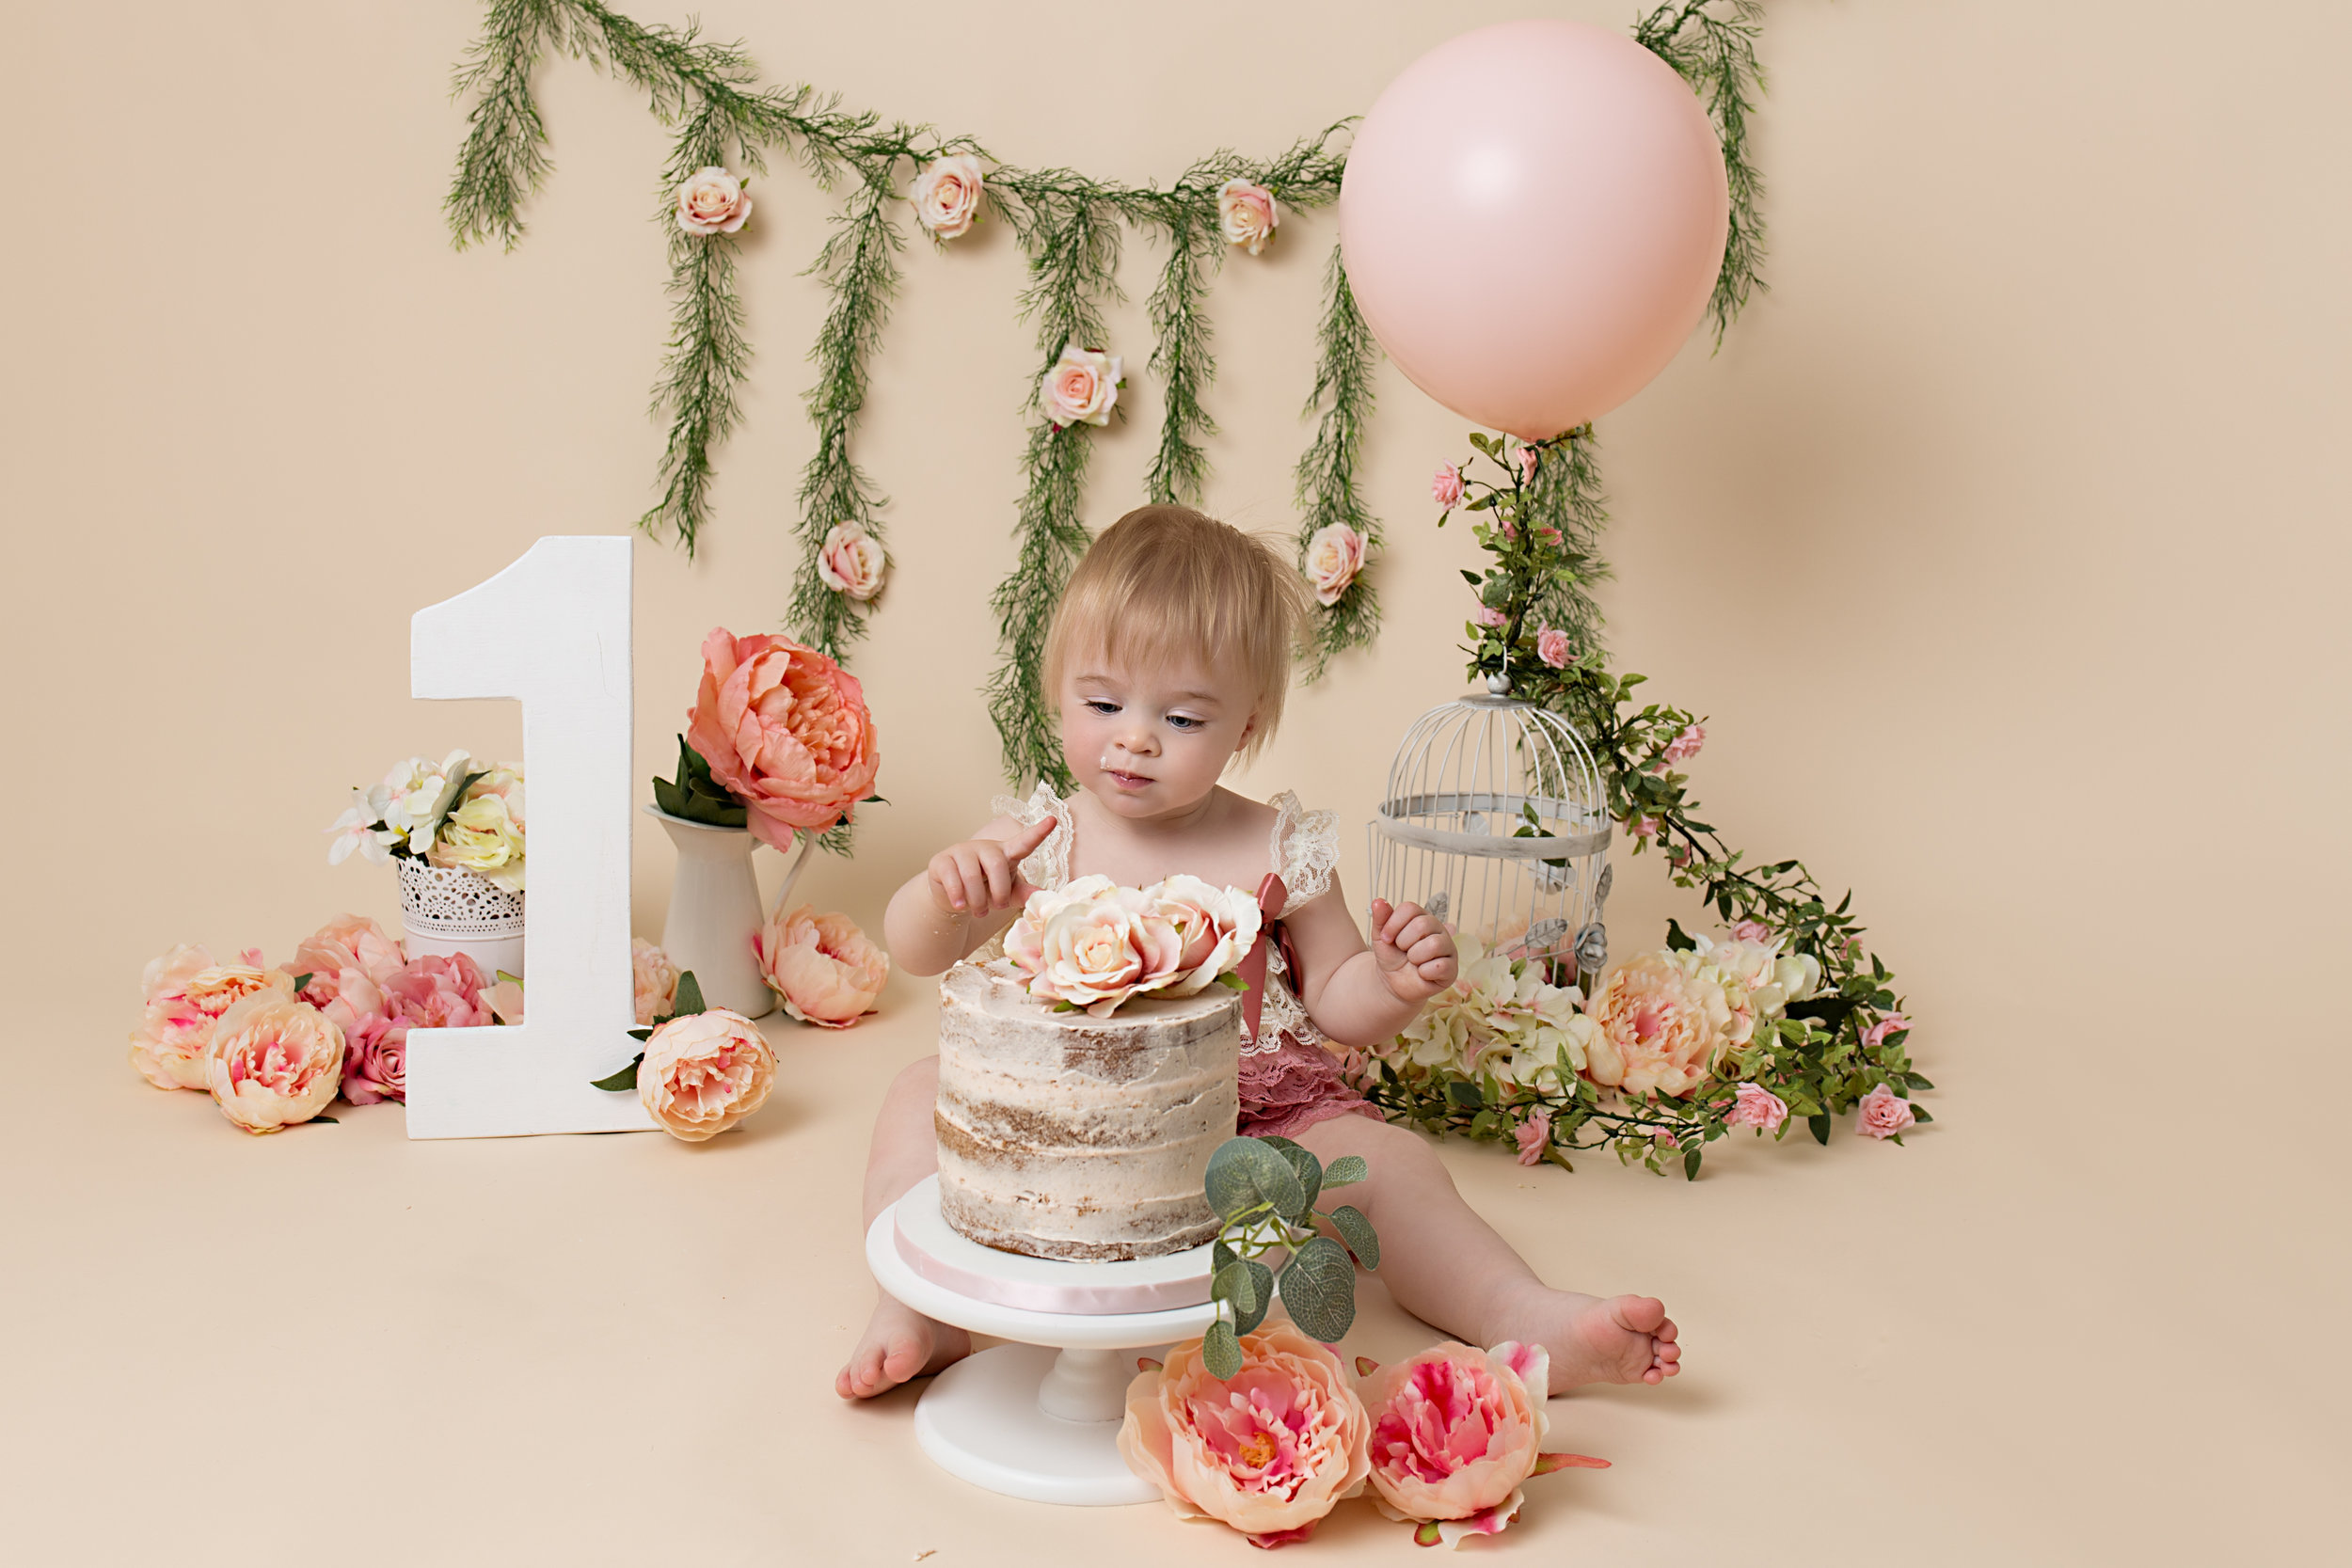 newborn-photography-children-baby-milton keynes-cake-smash-maternity-1-8.jpg